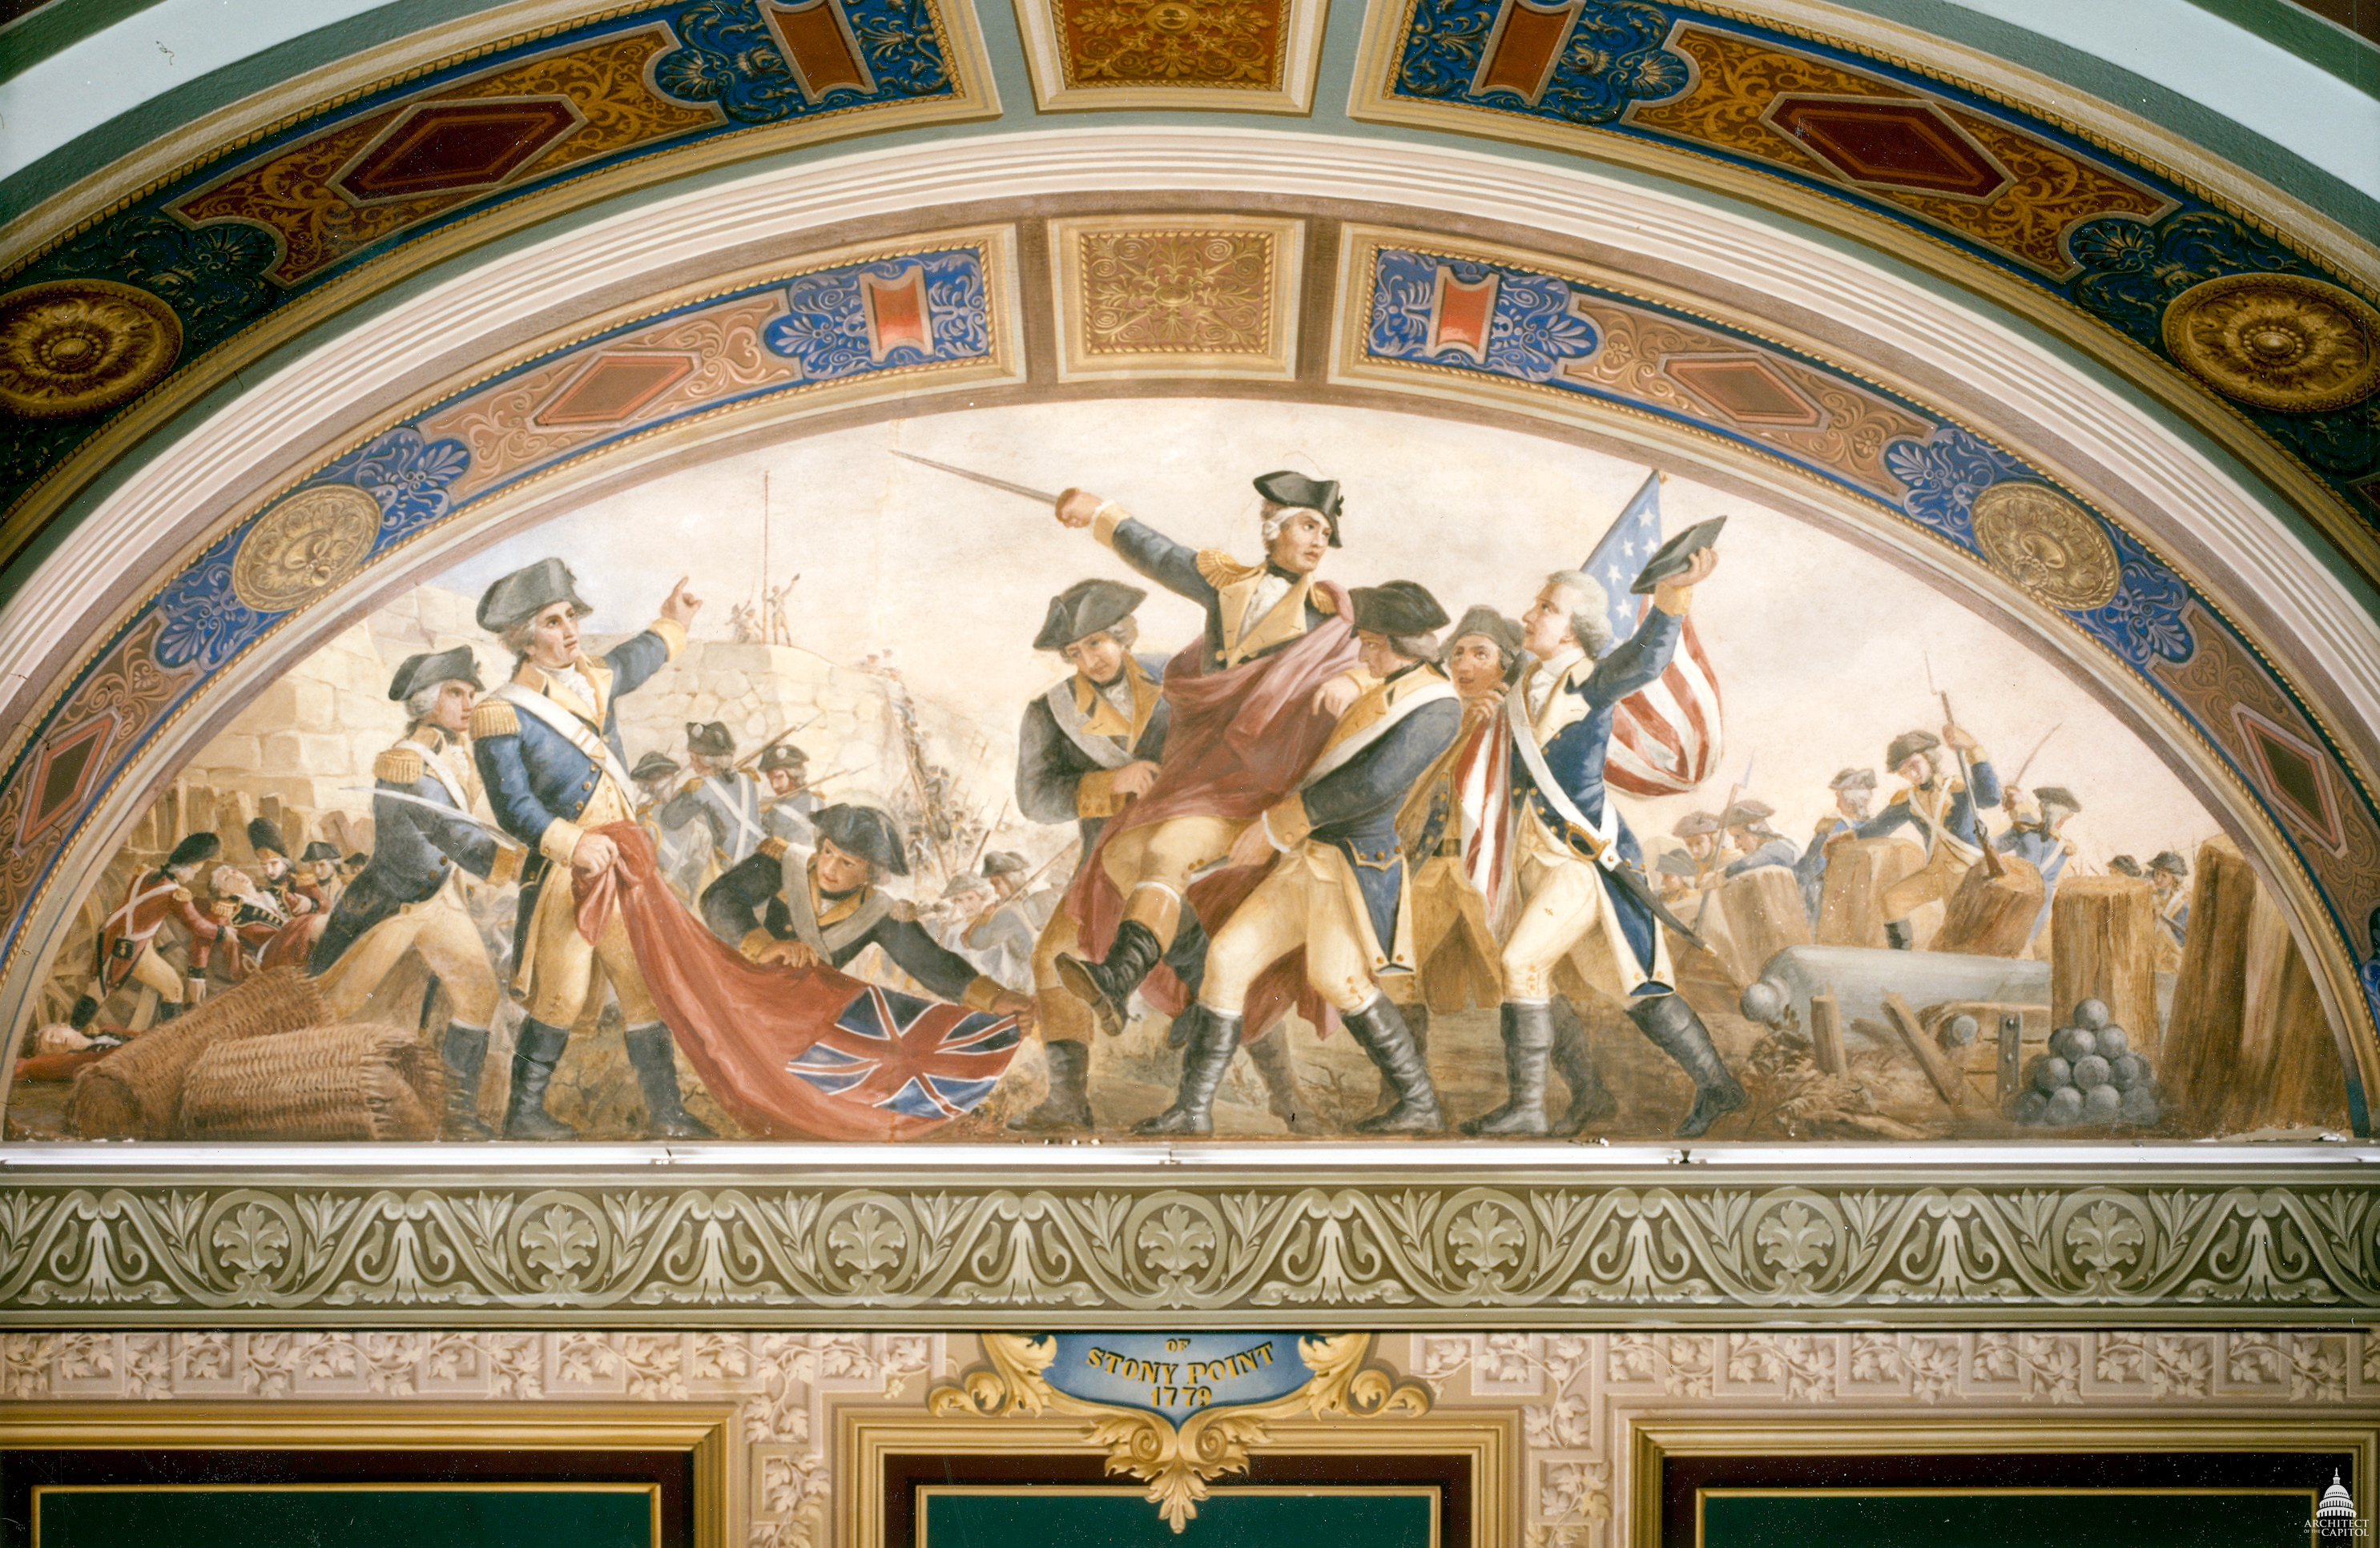 Fresco depicting the capture of Stony Point located in the U.S. Capitol - The Storming of Stony Point, by Constantino Brumidi. [Room S-128]. Courtesy Architect of the Capitol.